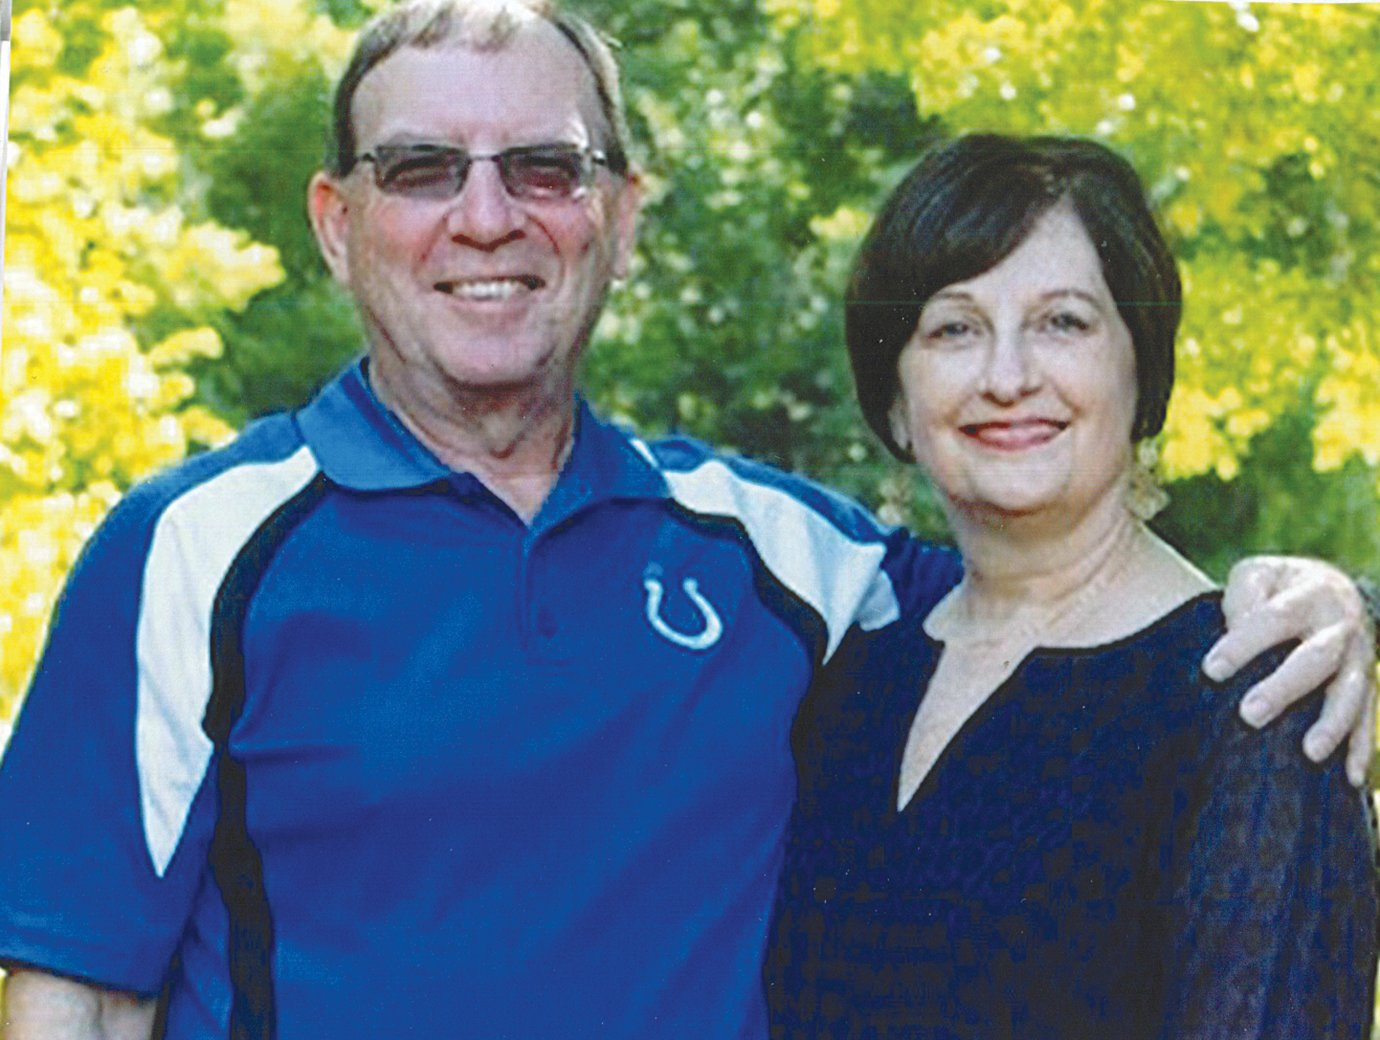 Rick and Becky Haas will celebrate their 50th wedding anniversary on June 20.